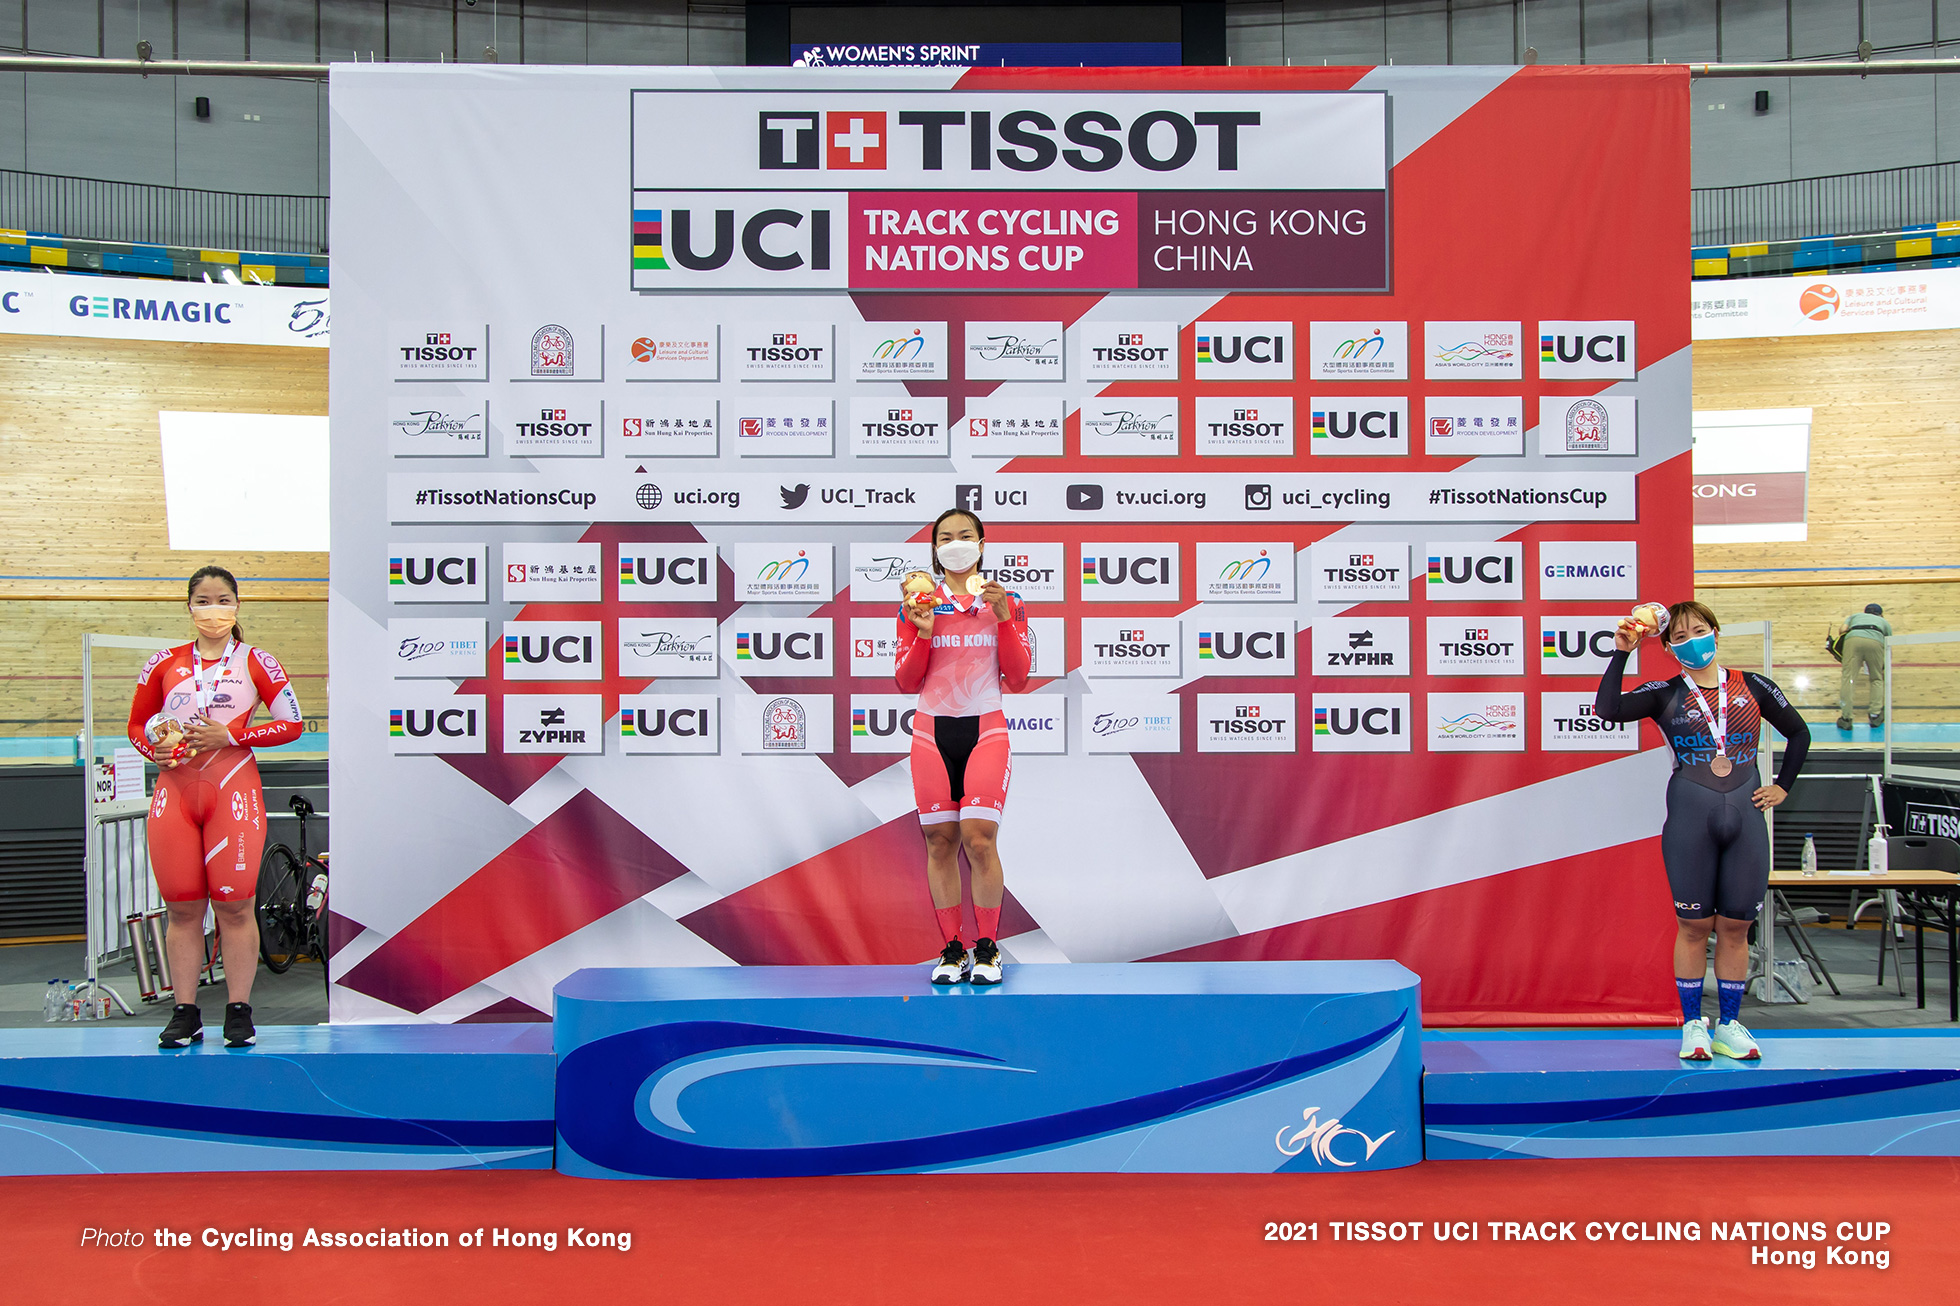 Women's Sprint, TISSOT UCI TRACK CYCLING NATIONS CUP - HONG KONG